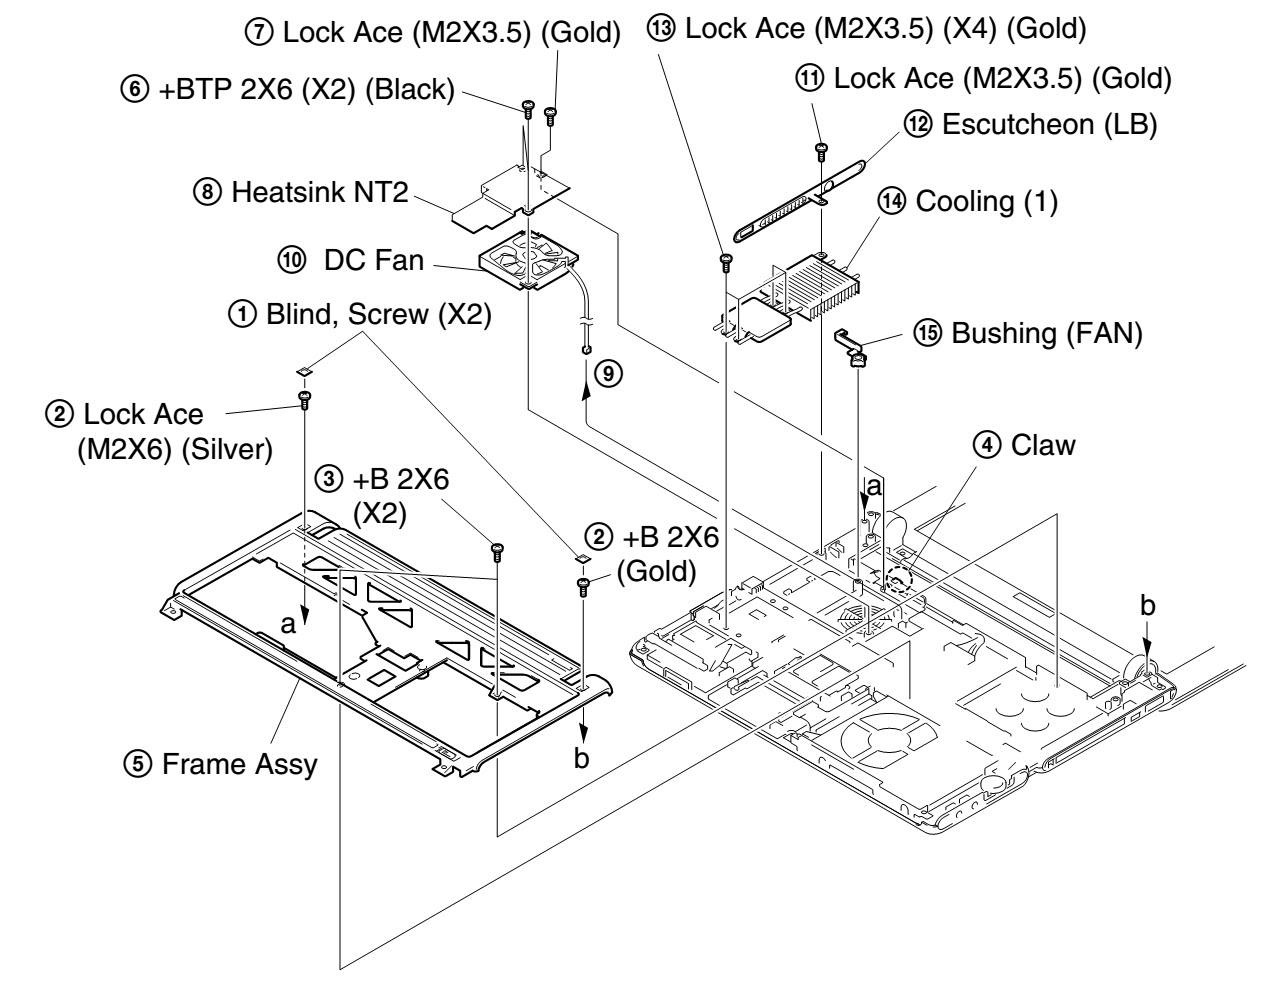 Sony Vaio Parts Diagram - Bing Images